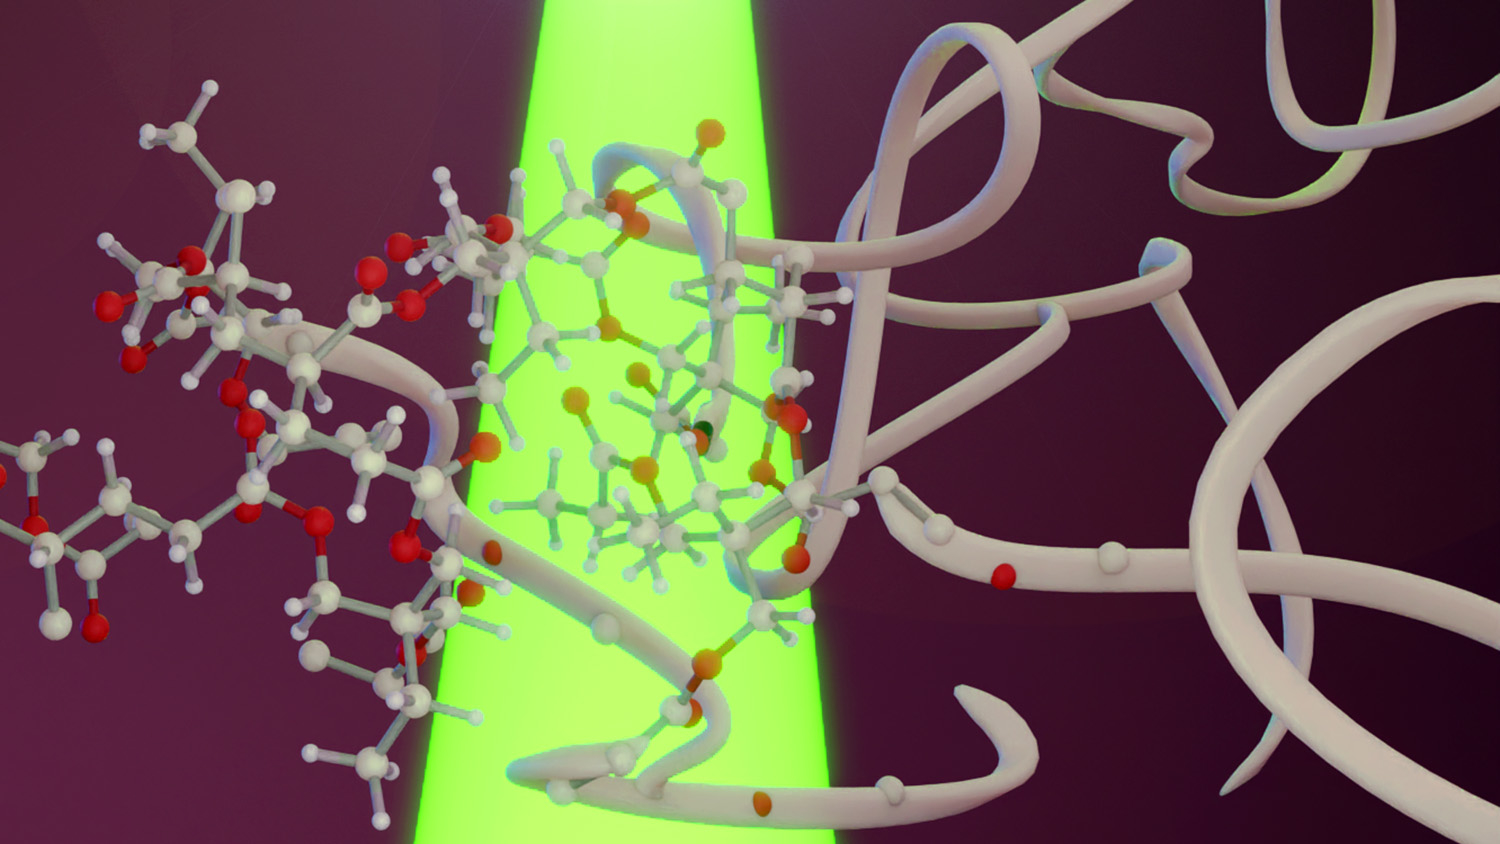 Researchers demonstrate a way to use low-energy, visible light to produce polymer gel objects from pure monomer solutions illustration